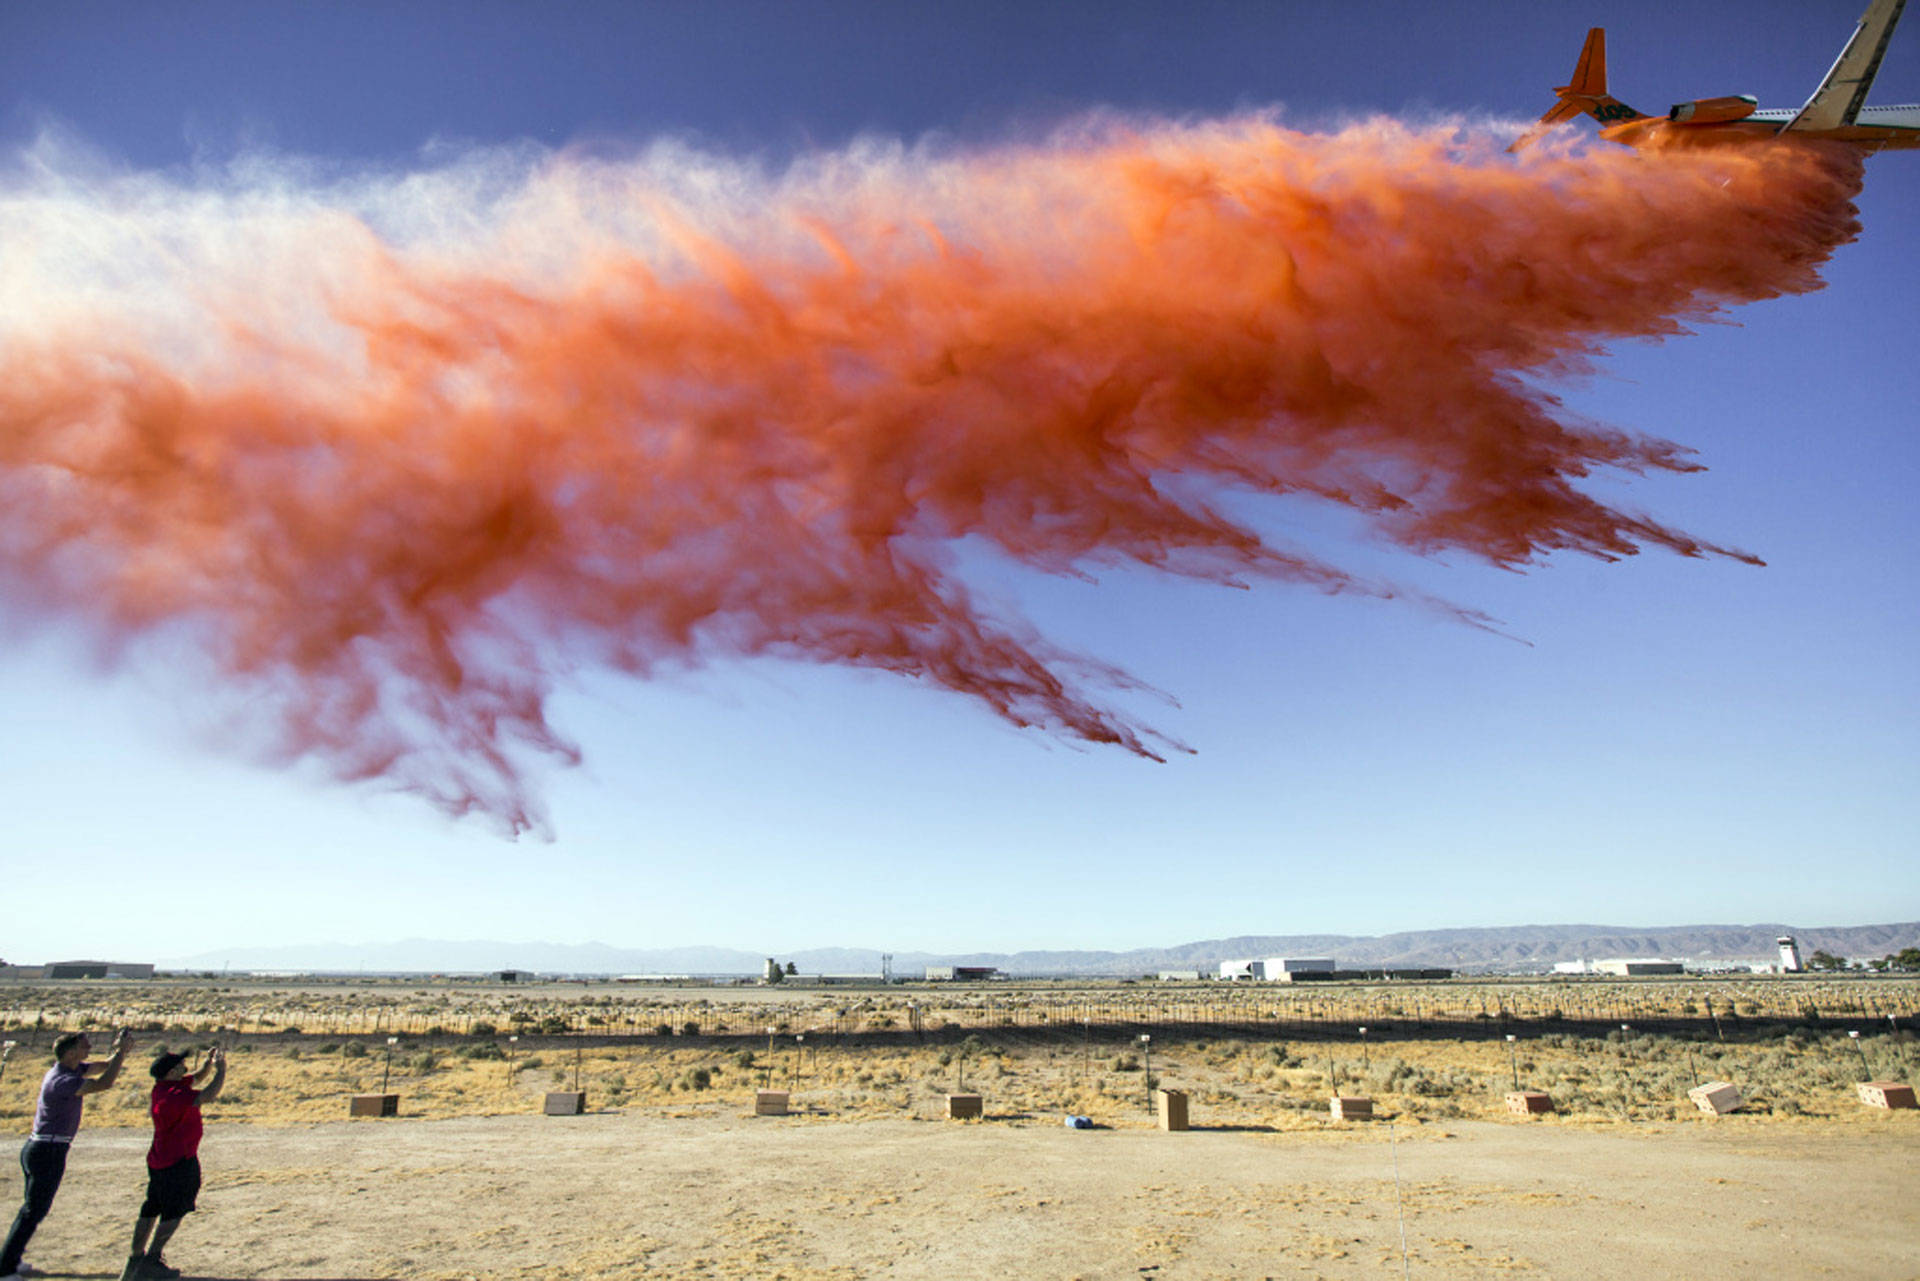 The U.S. Forest Service conducts a fire retardant drop test for a new air tanker at Fox Airfield in Lancaster on July 8, 2016. Maya Sugarman/KPCC